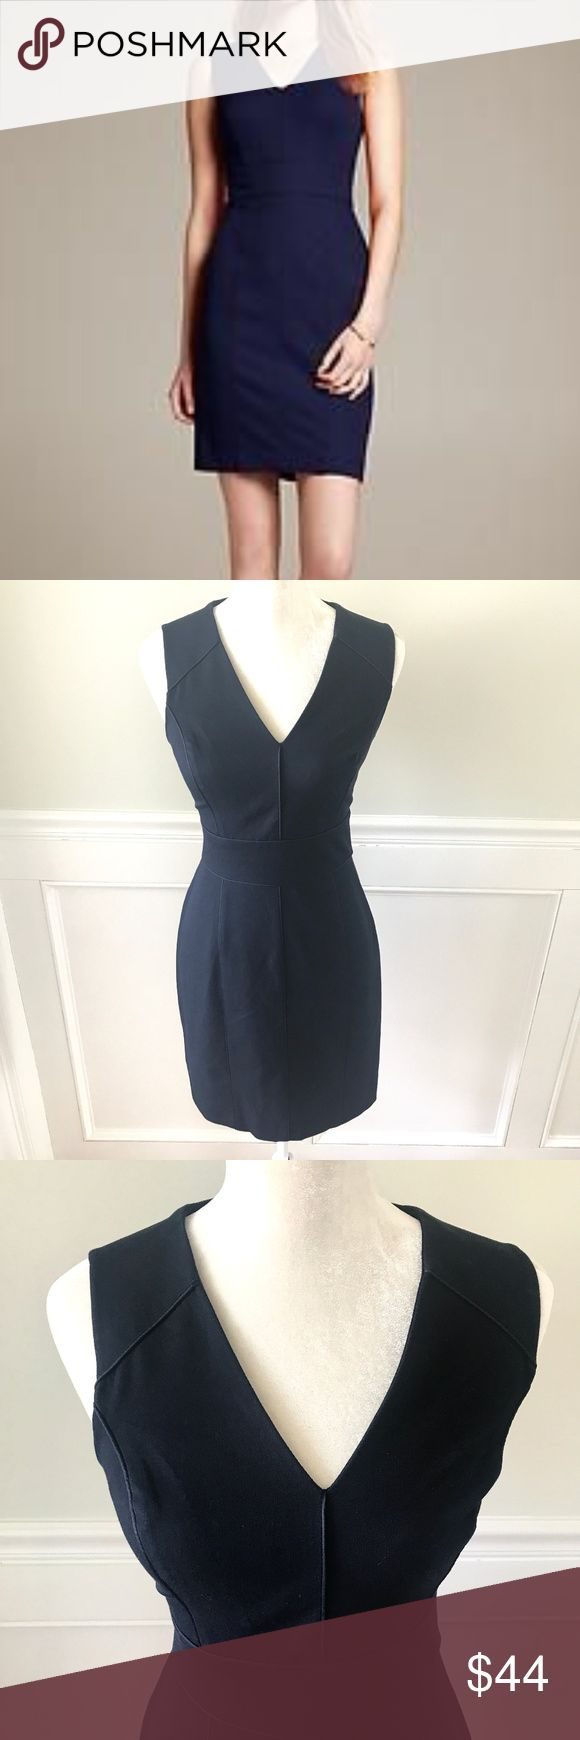 BANANA REPUBLIC Sloan Piped Sheath Dress Navy 2 New without tags (NWOT)- tried on, but never worn. Beautiful Sloan sheath dress from Banana Republic in Preppy Navy.  Well constructed of a thick cotton/rayon/spandex knit that has just a bit of stretch for a flattering fit. Work appropriate v-neck. Banded waist. Piping detail at waist, bust, and skirt. Hidden back zip with hook and eye closure. Timeless, classic dress. Size 2- fits an XS/Extra Small or a Small- please refer to measurements…